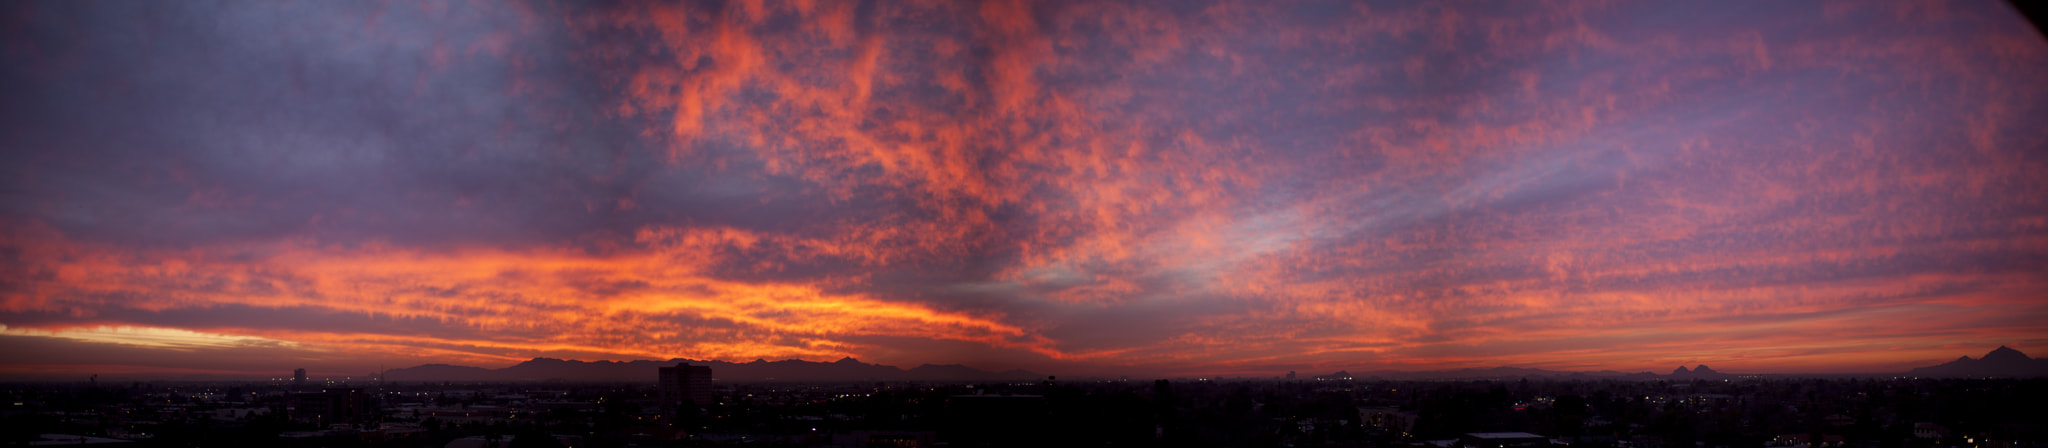 Photograph Phoenix Sunset Panorama by Rex Sowards on 500px